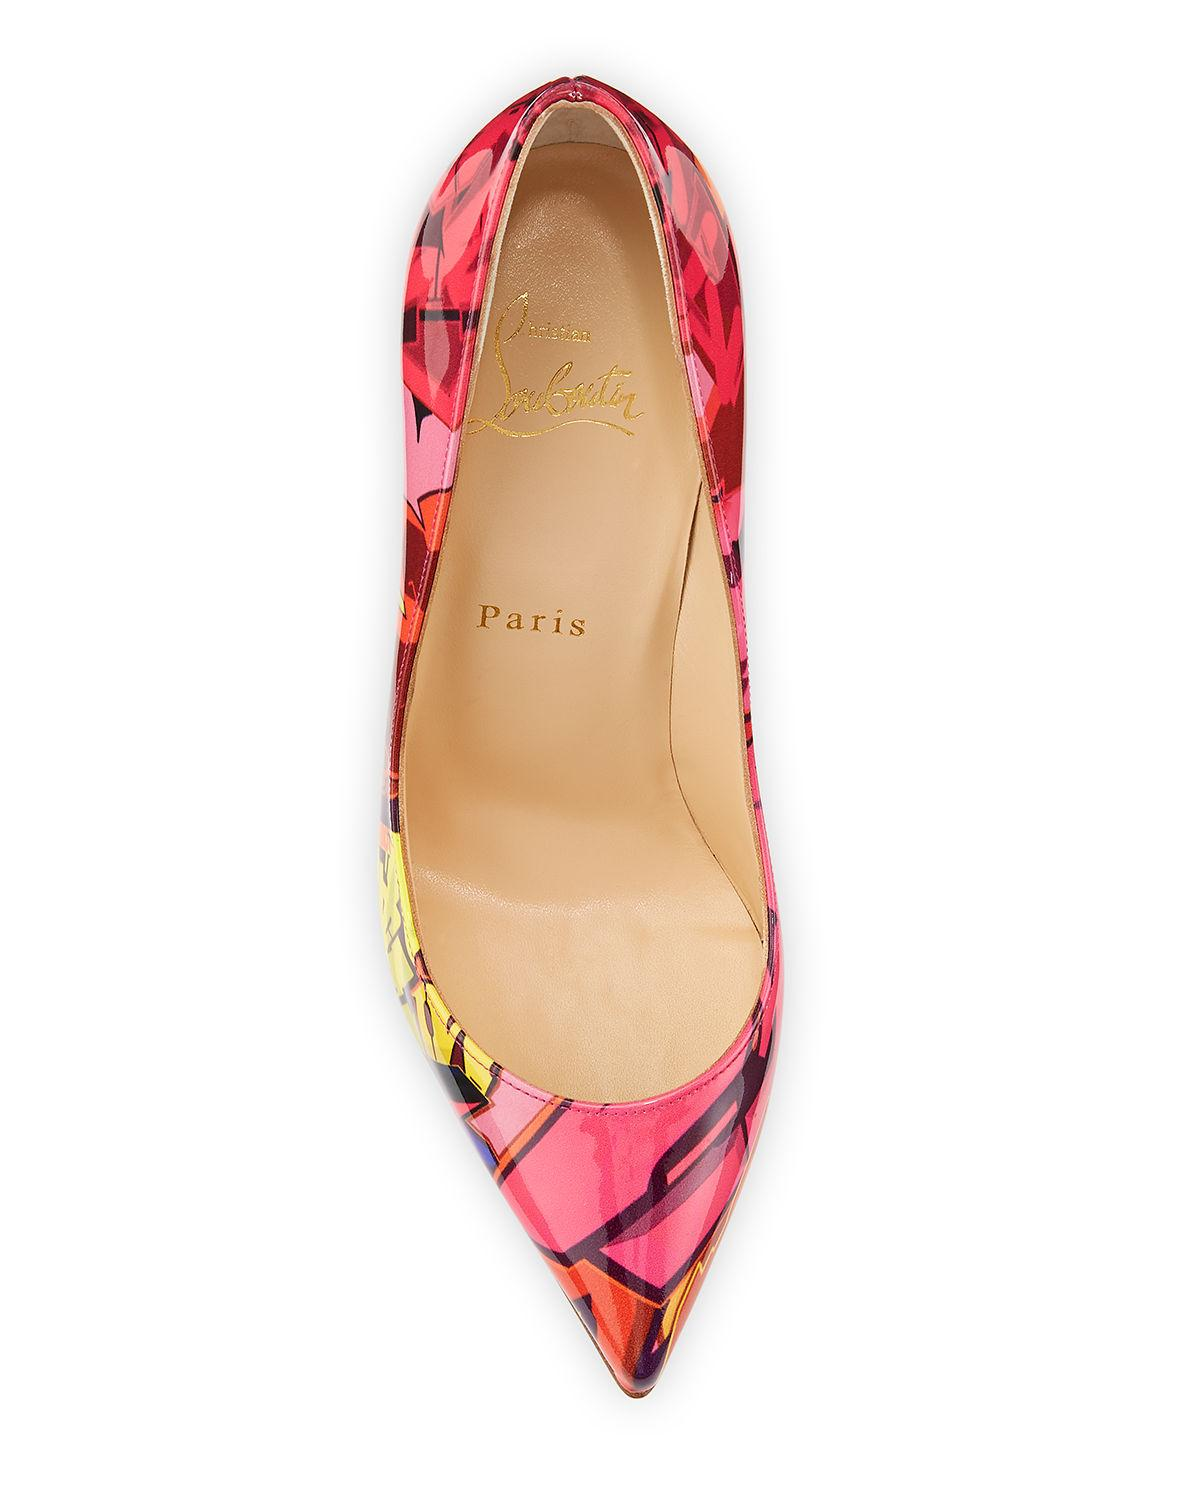 promo code 69d34 e8133 Christian Louboutin Multicolor Pigalle Follies 100mm Patent Metrograf Red  Sole Pumps